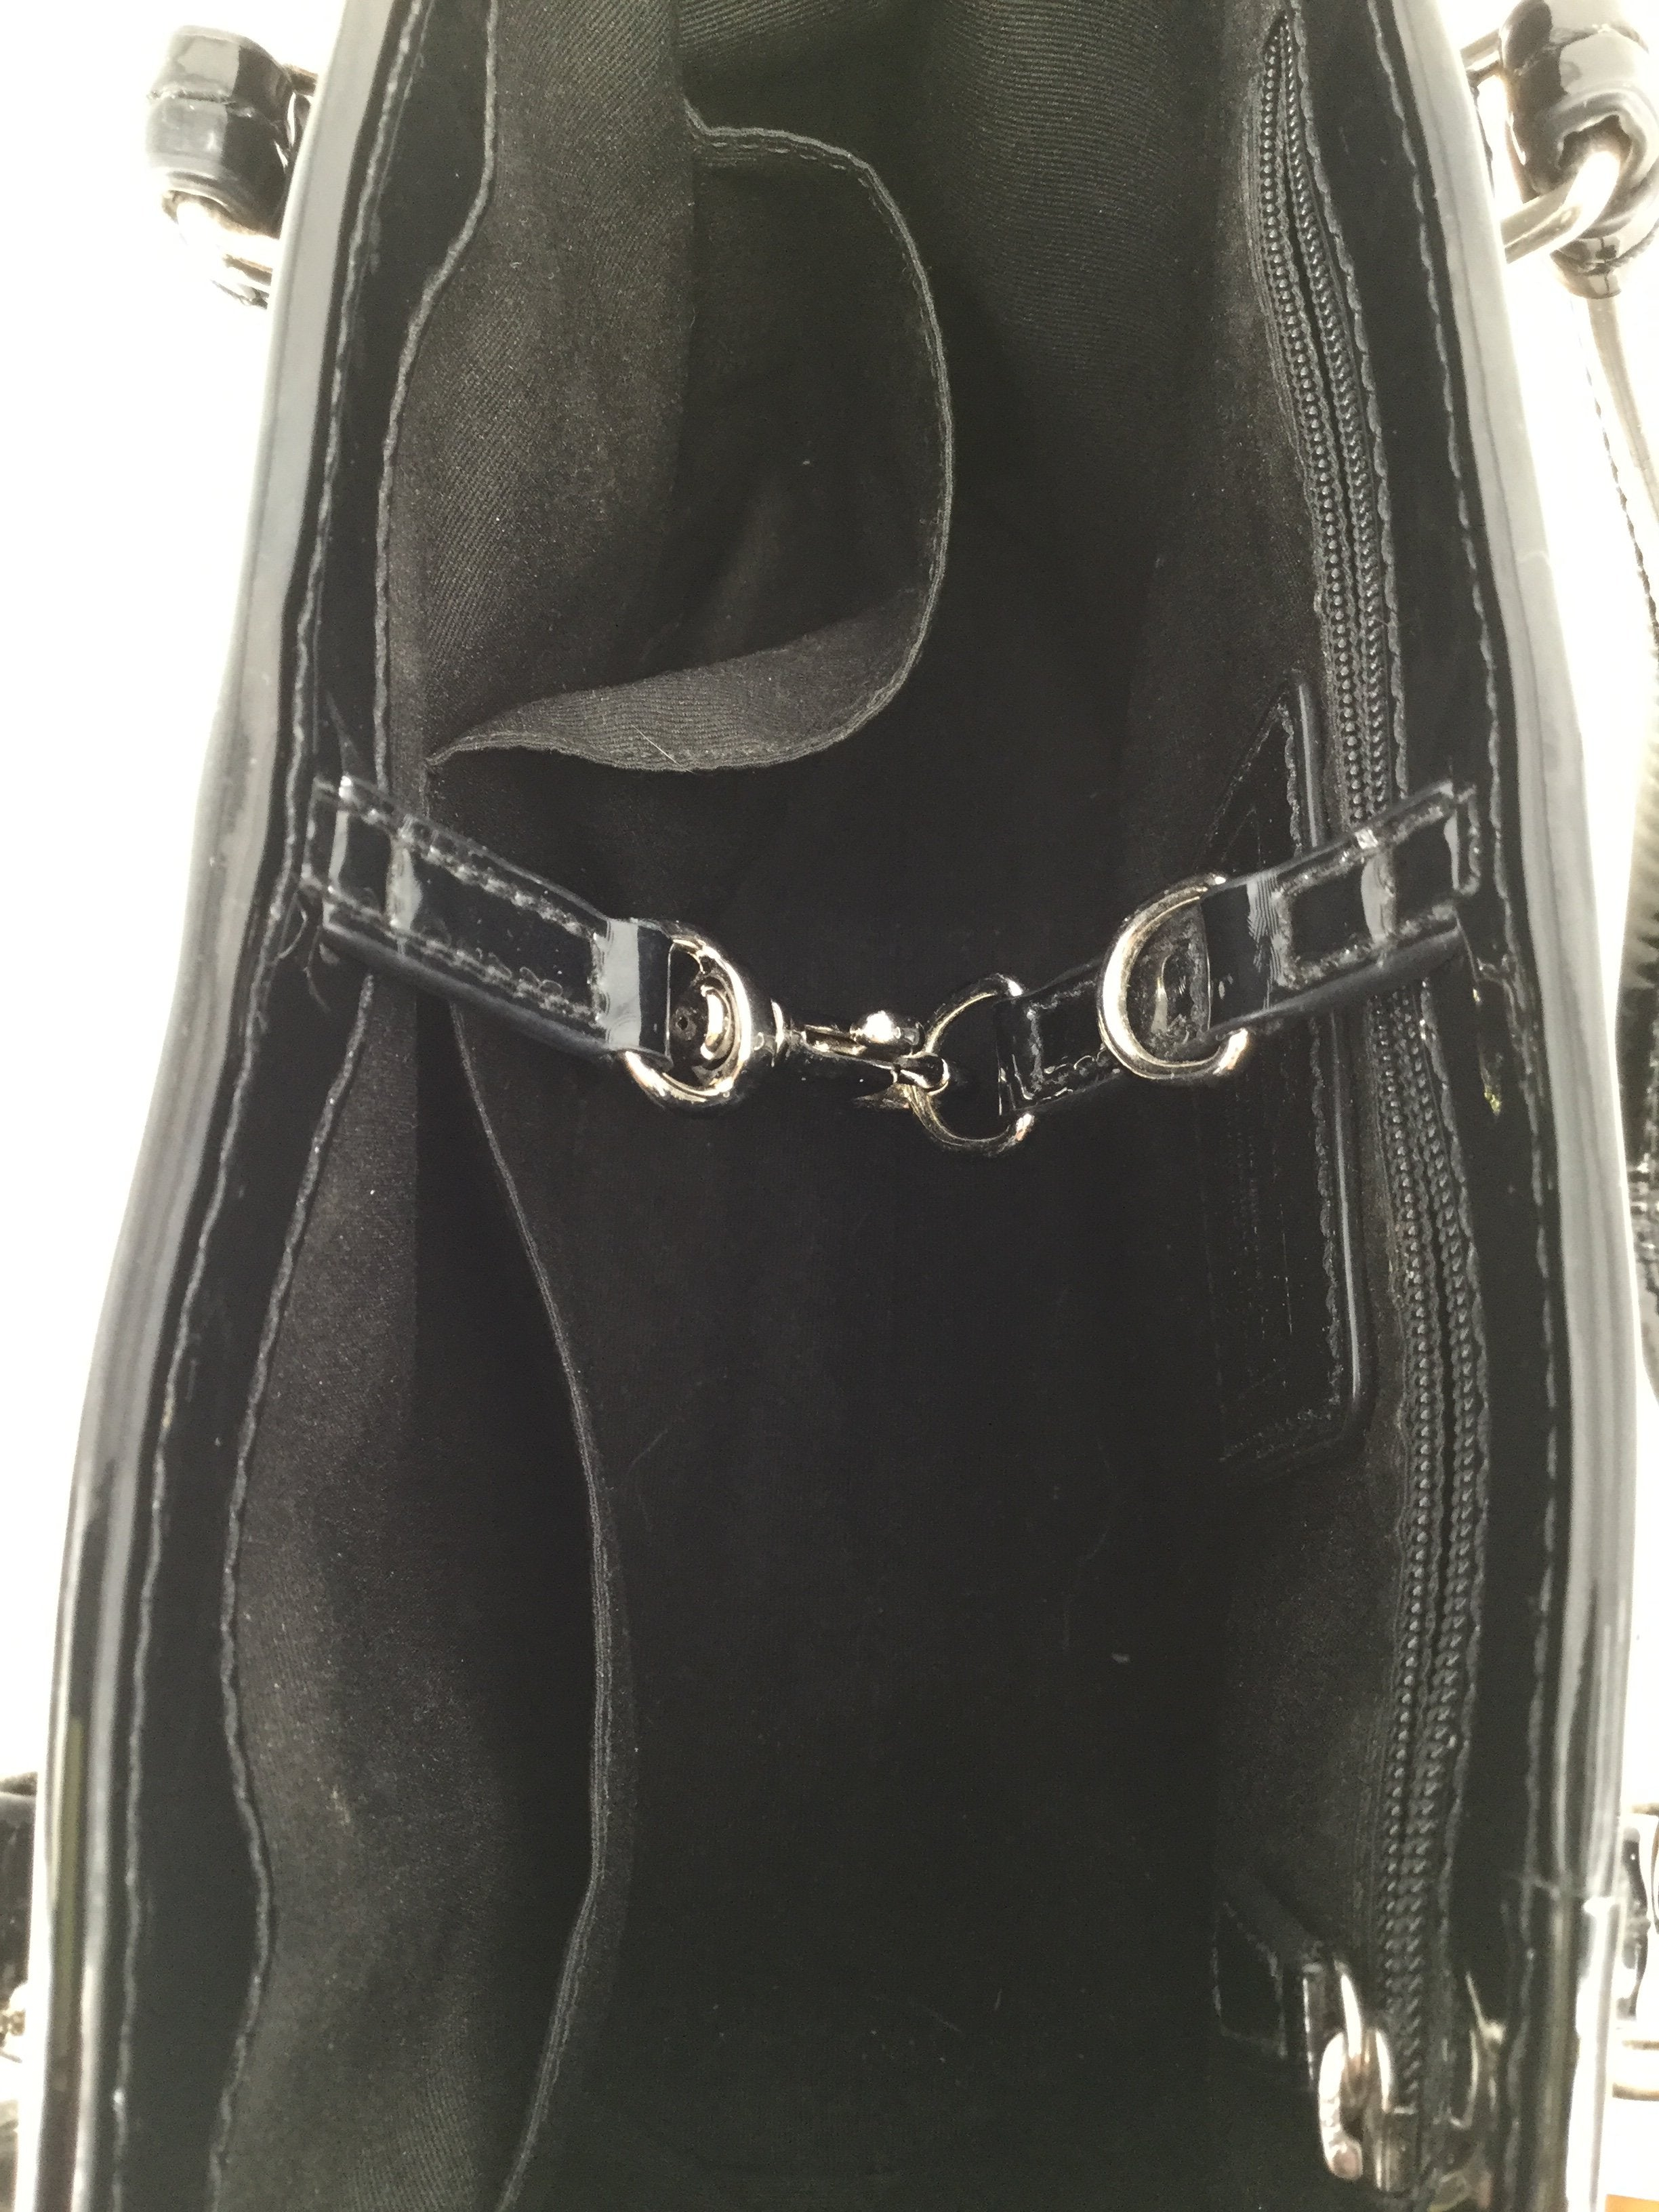 Small Black Patent Leather Coach Handbag - <P>SMALL BLACK PATENT LEATHER COACH HANDBAG. SILVER DETAILING AND CLASSIC COACH LOGO ALL OVER THE BAG. BLACK INTERIOR WITH ONE ZIPPED POCKET AND TWO SMALLER POCKETS. OPEN DESIGN WITH HOOK CLOSURE. GENTLY USED.</P>